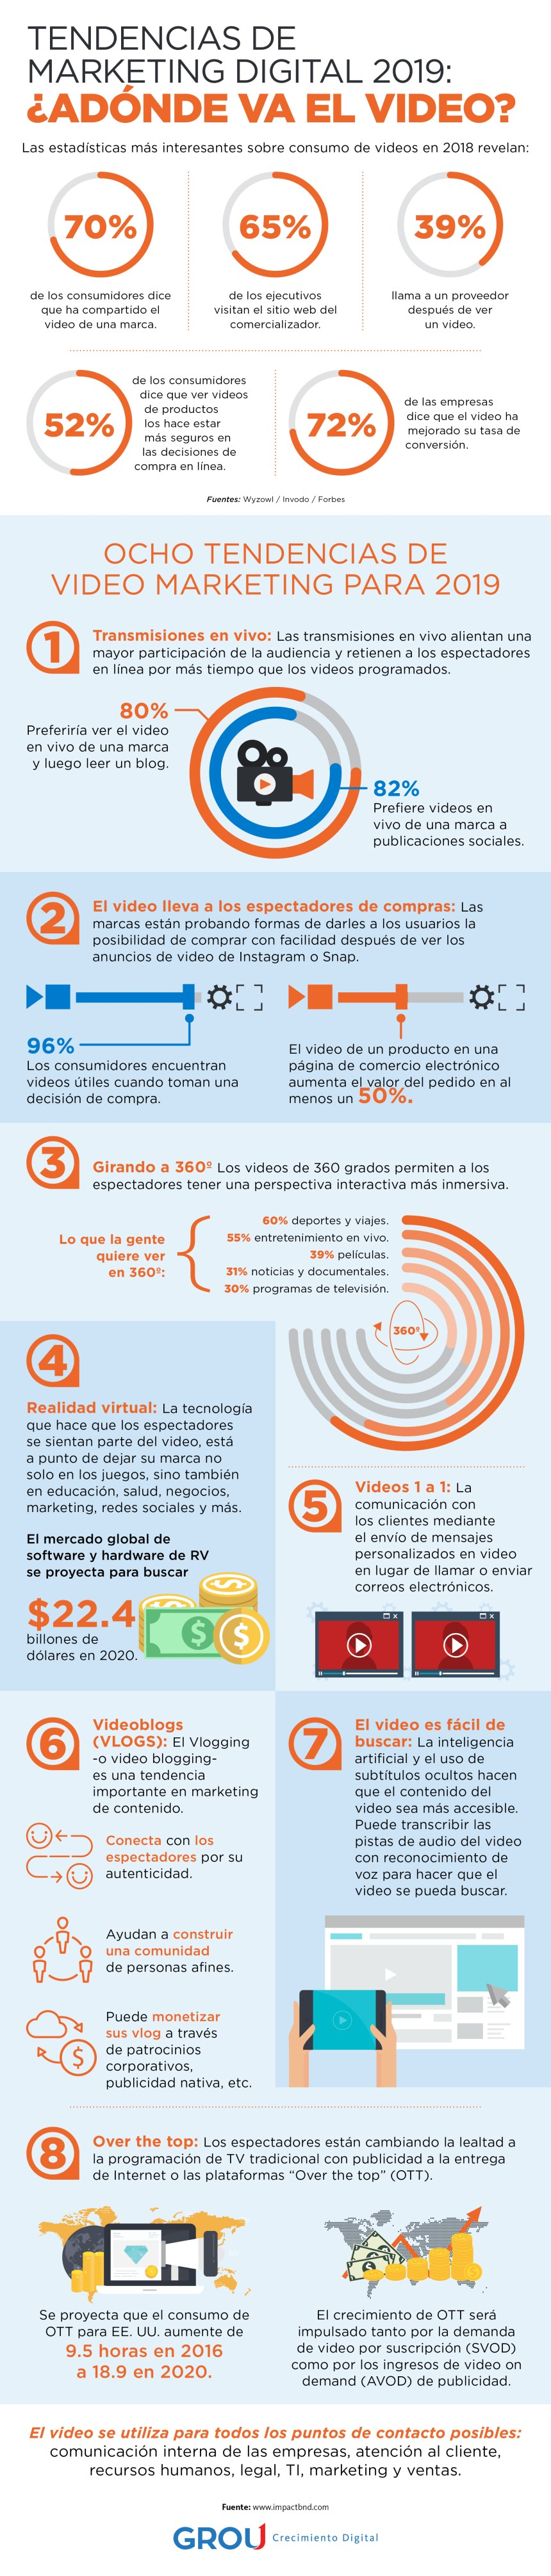 Tendencias en vídeo marketing #infografia #infographic #marketing